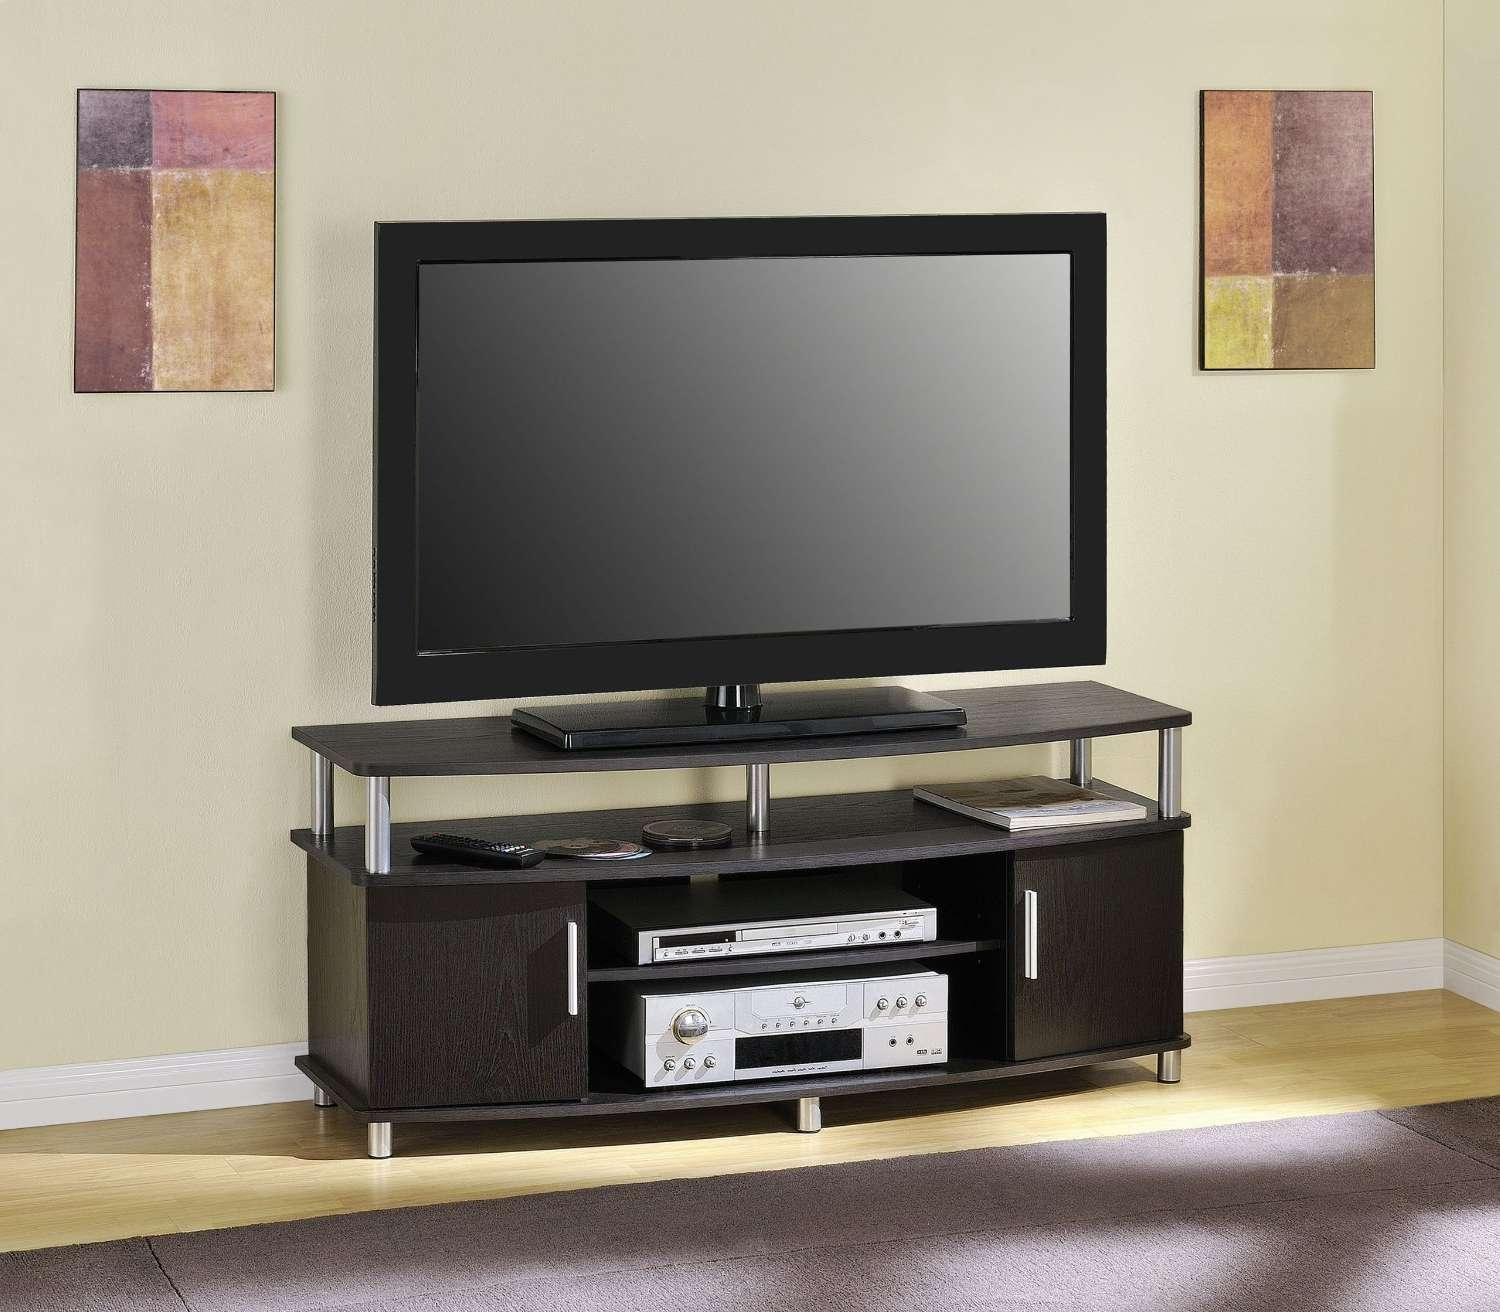 Tv Stands: 7 Best Selling Flat Screen Tv Stands 2017 Inside Modern Tv Cabinets For Flat Screens (View 7 of 20)